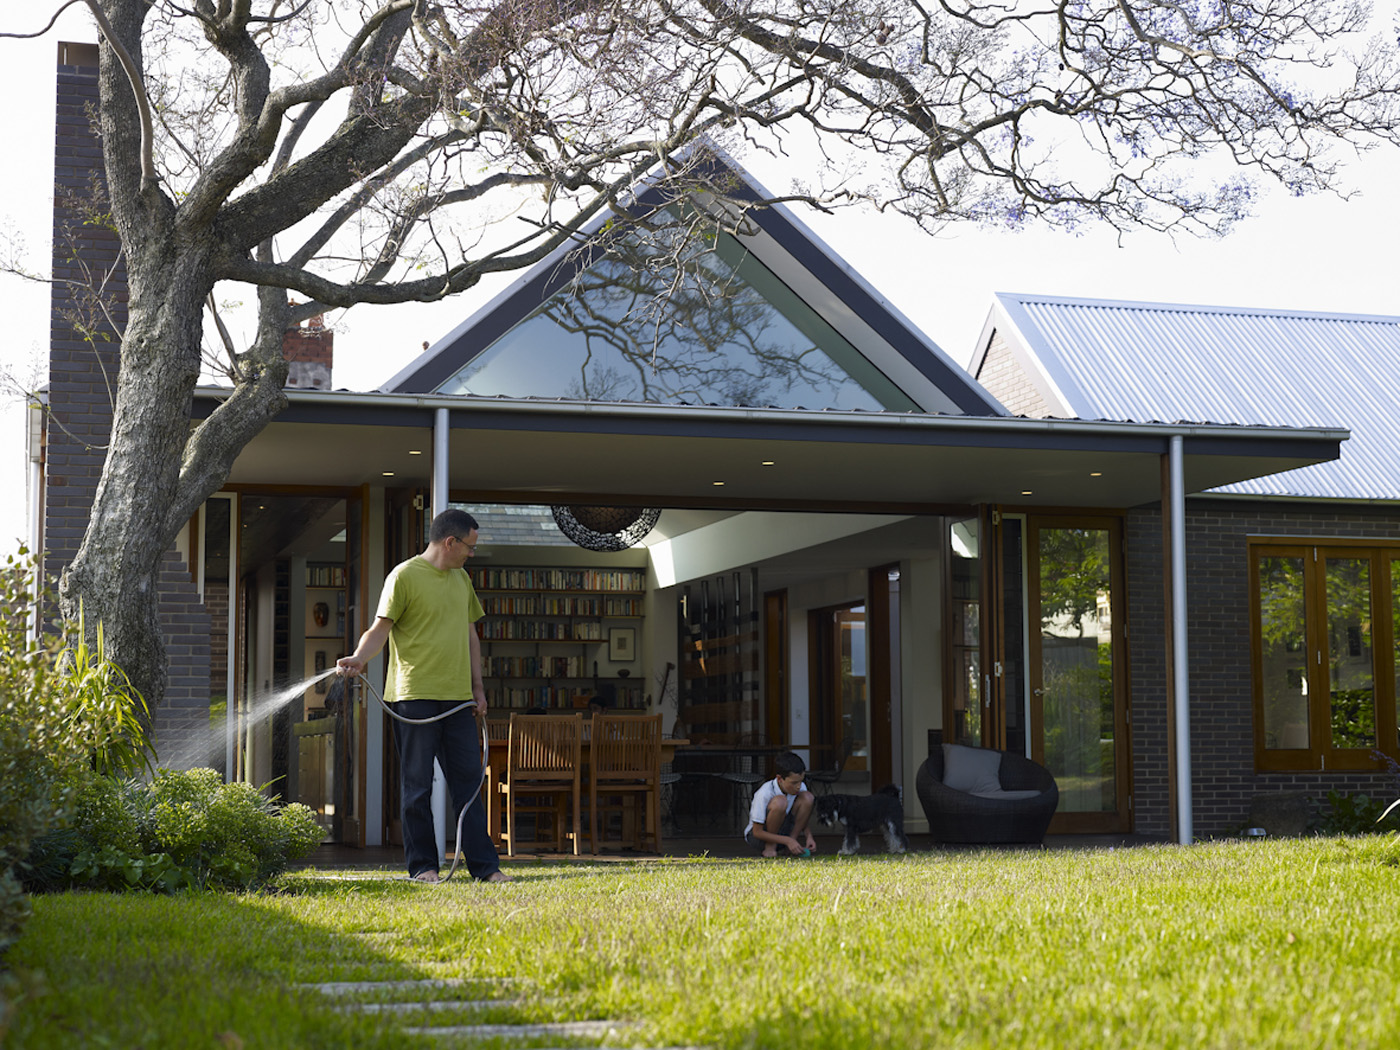 Garrett House by Sydney award winning architecture office Sam Crawford Architects. View into house from backyard